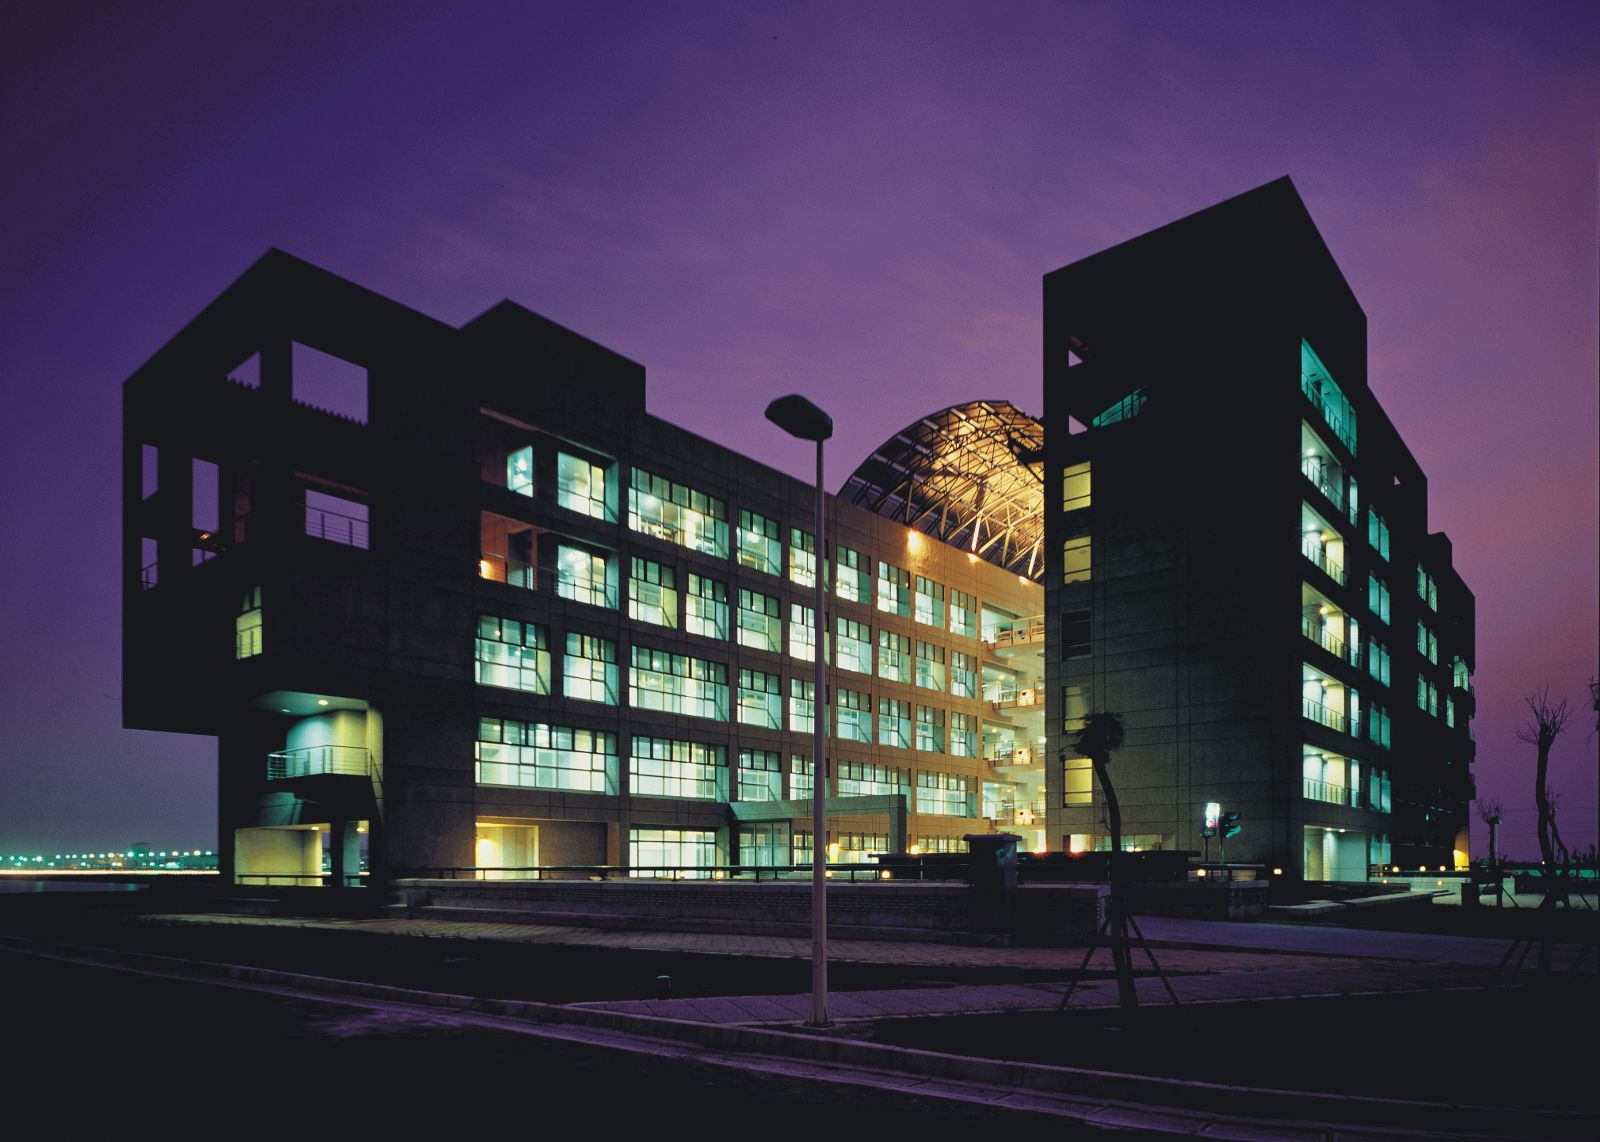 Research center of national cheng kung university